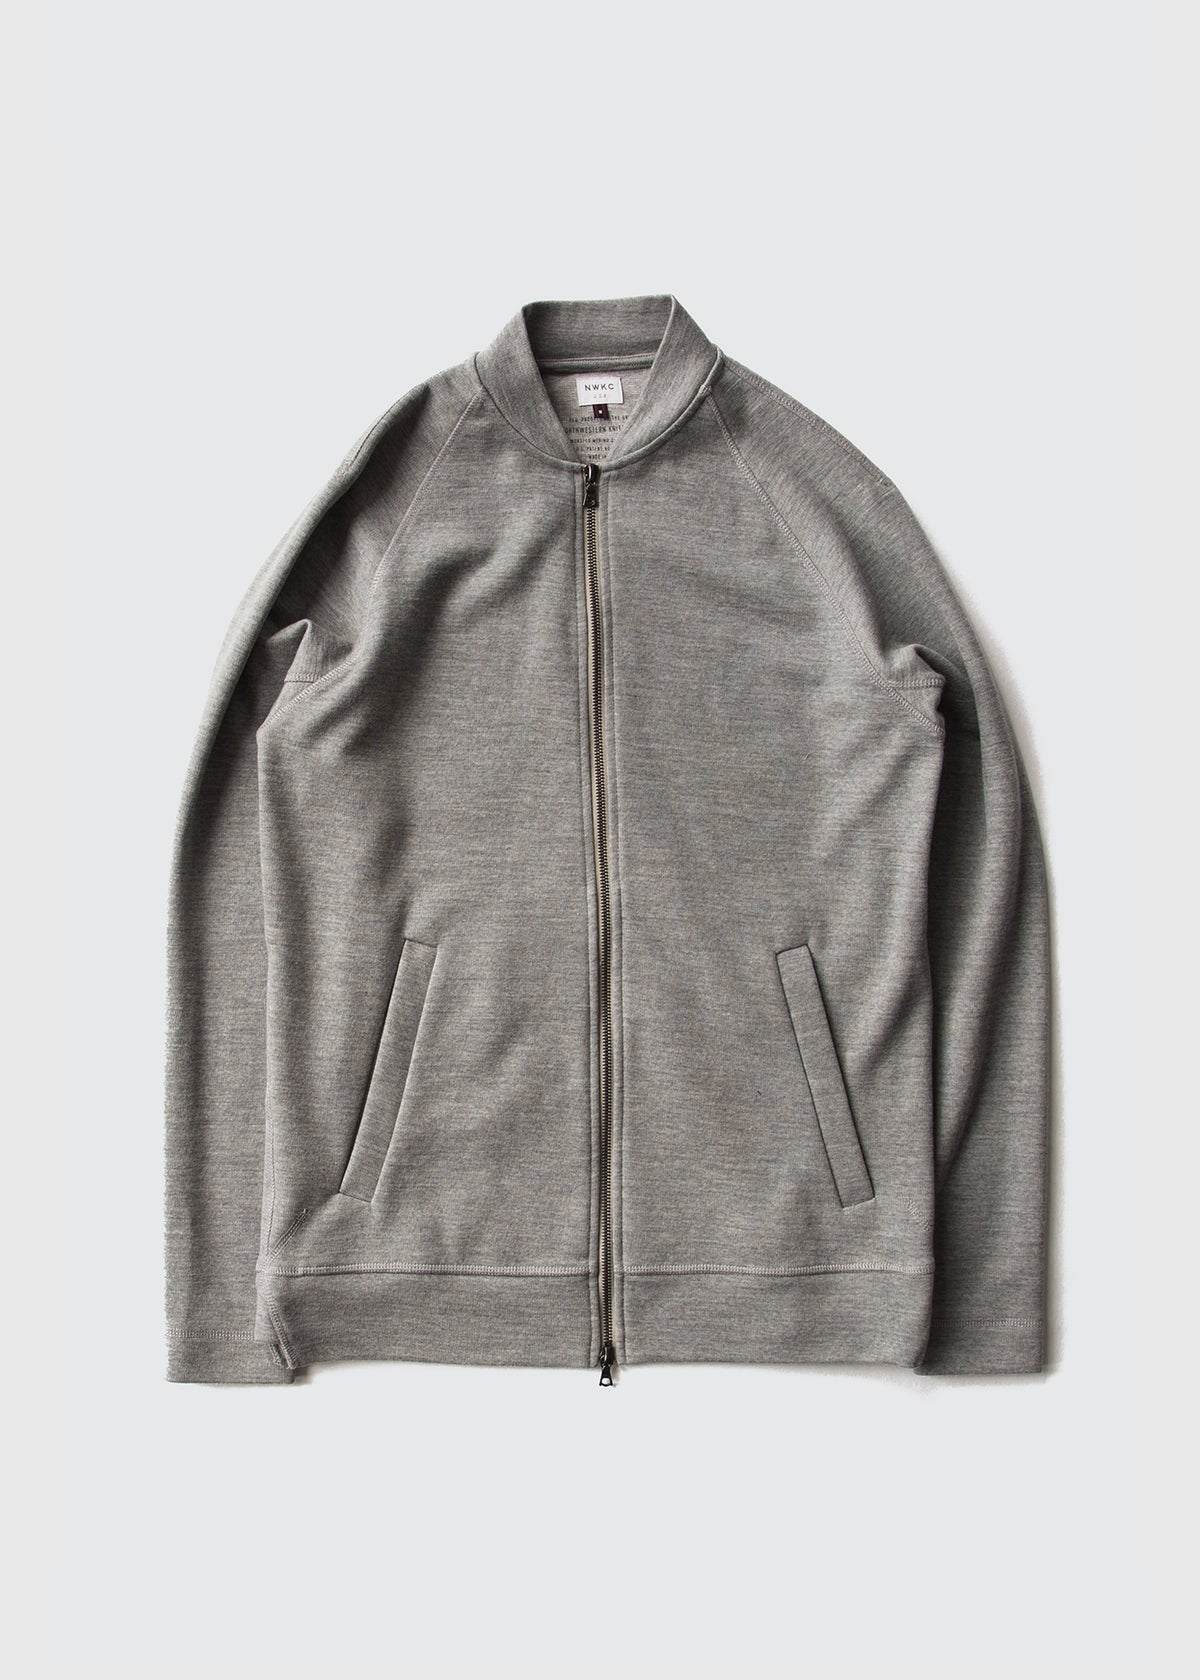 005 - VARSITY - FEATHER GRAY - Wilson & Willy's - MPLS Neighbor Goods